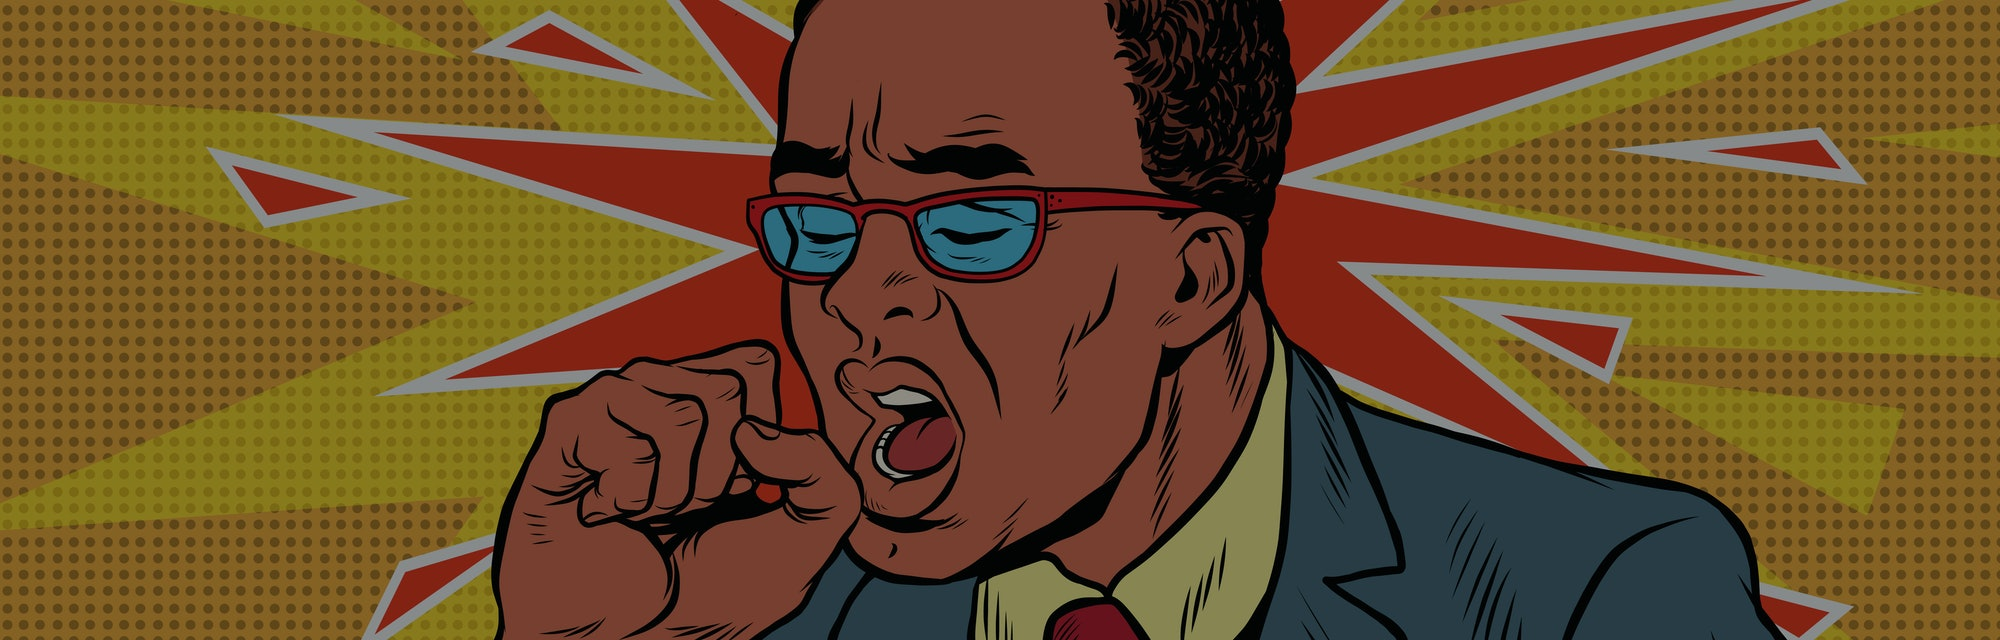 Sick man coughing. Pop art retro vector illustration. medicine and health care. The symptoms of the disease. African American people